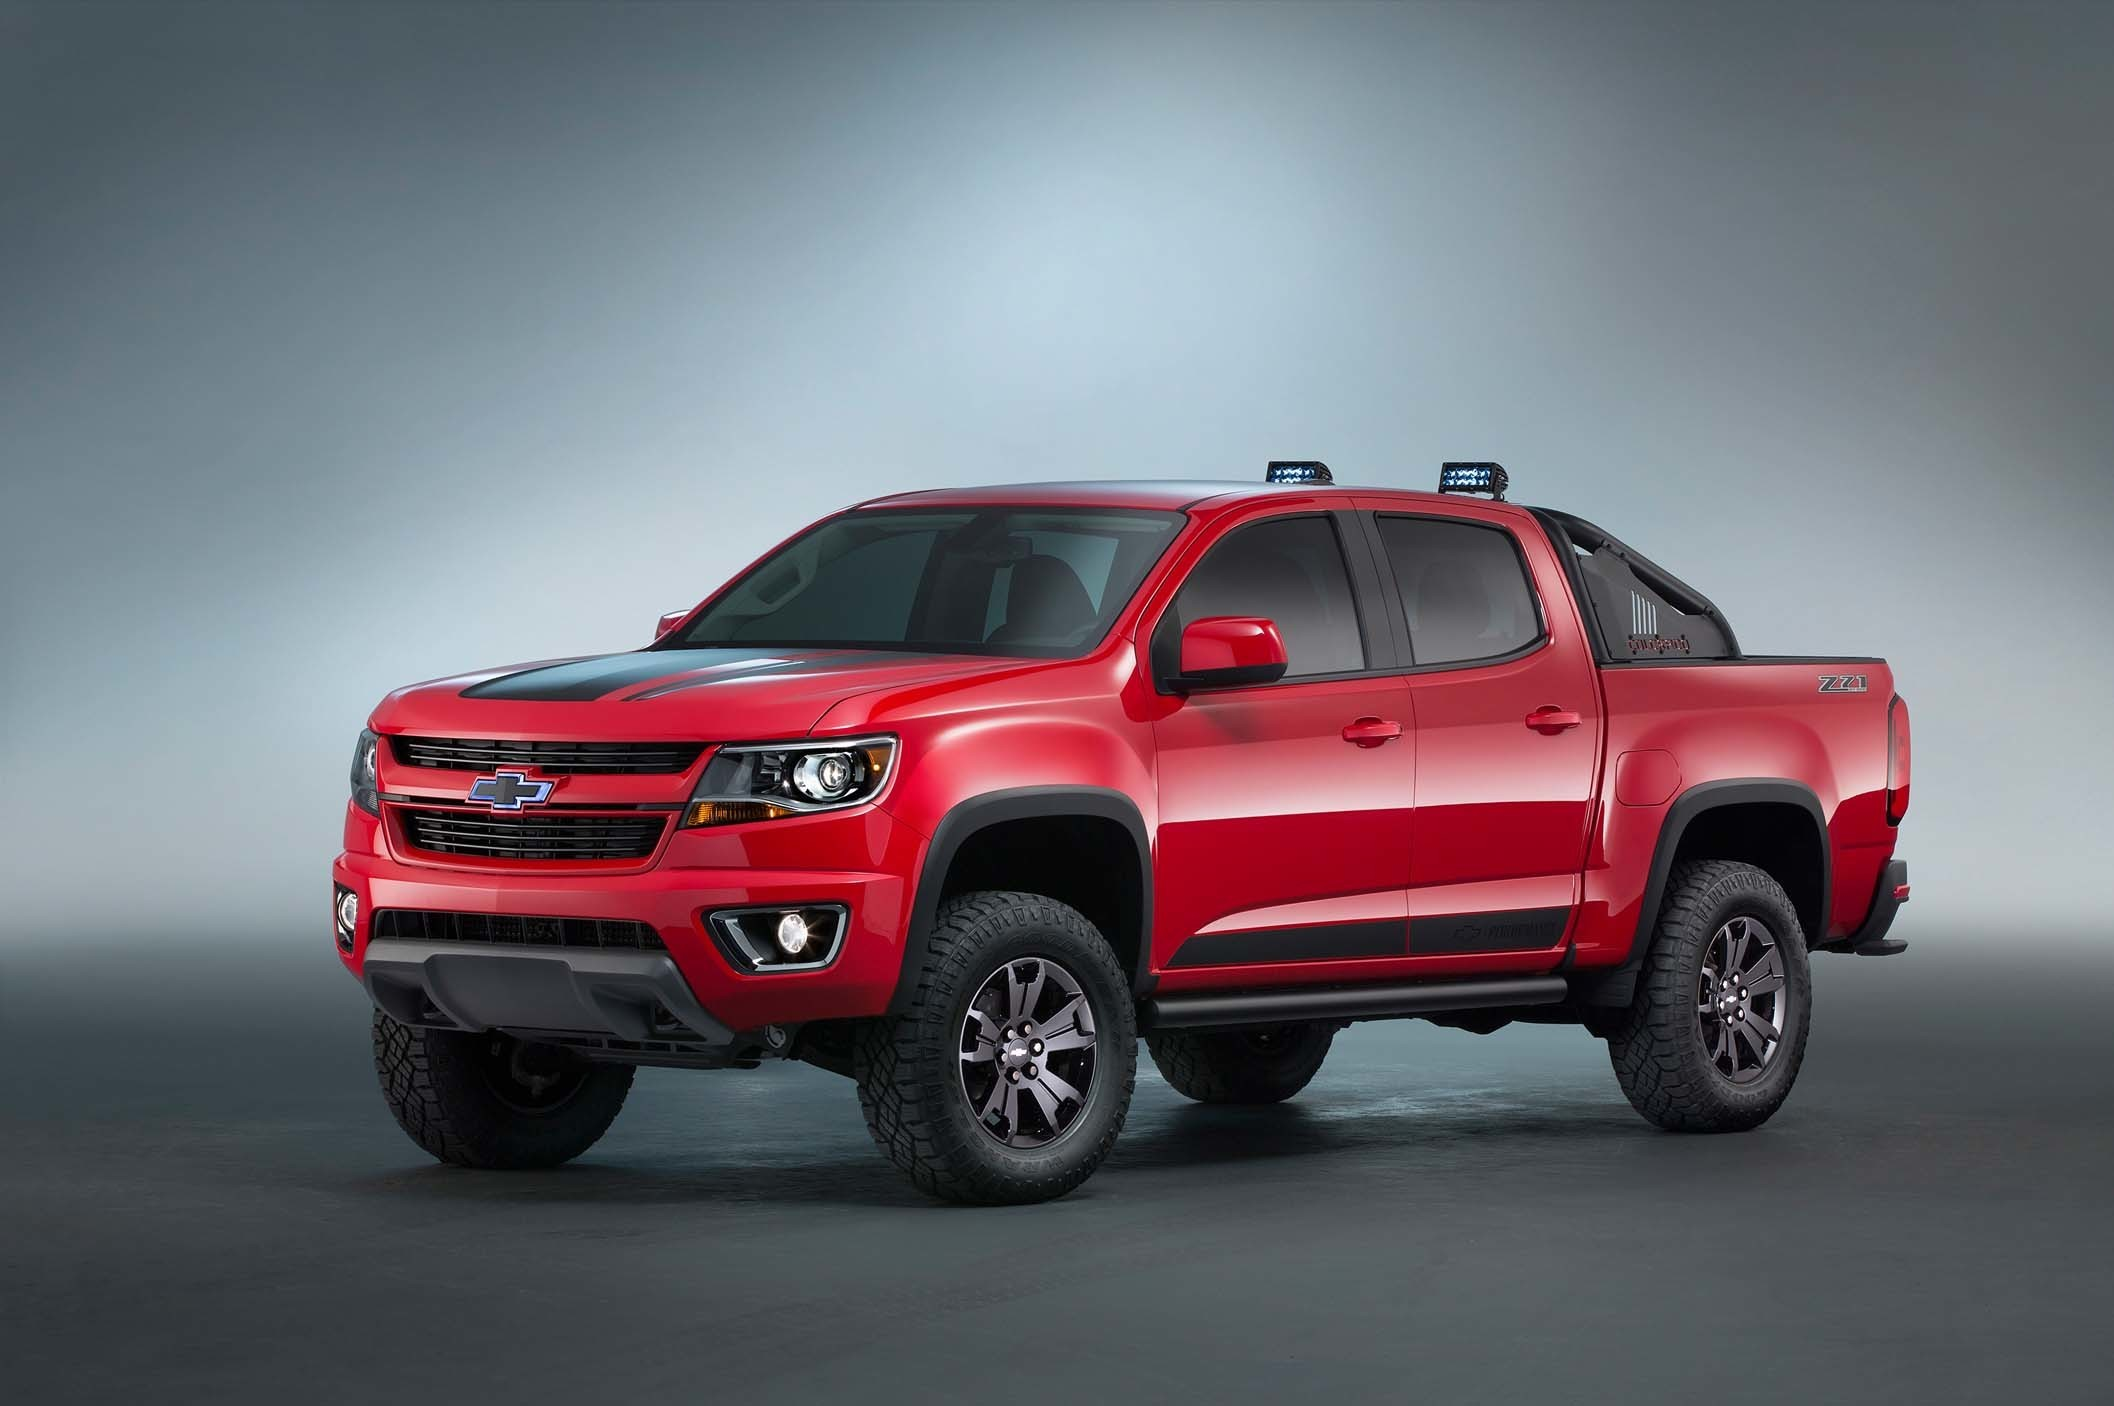 Chevrolet Colorado Z71 Trail Boss 3 0 Concept Is A Ford F 150 Raptor Clone At Sema Autoevolution